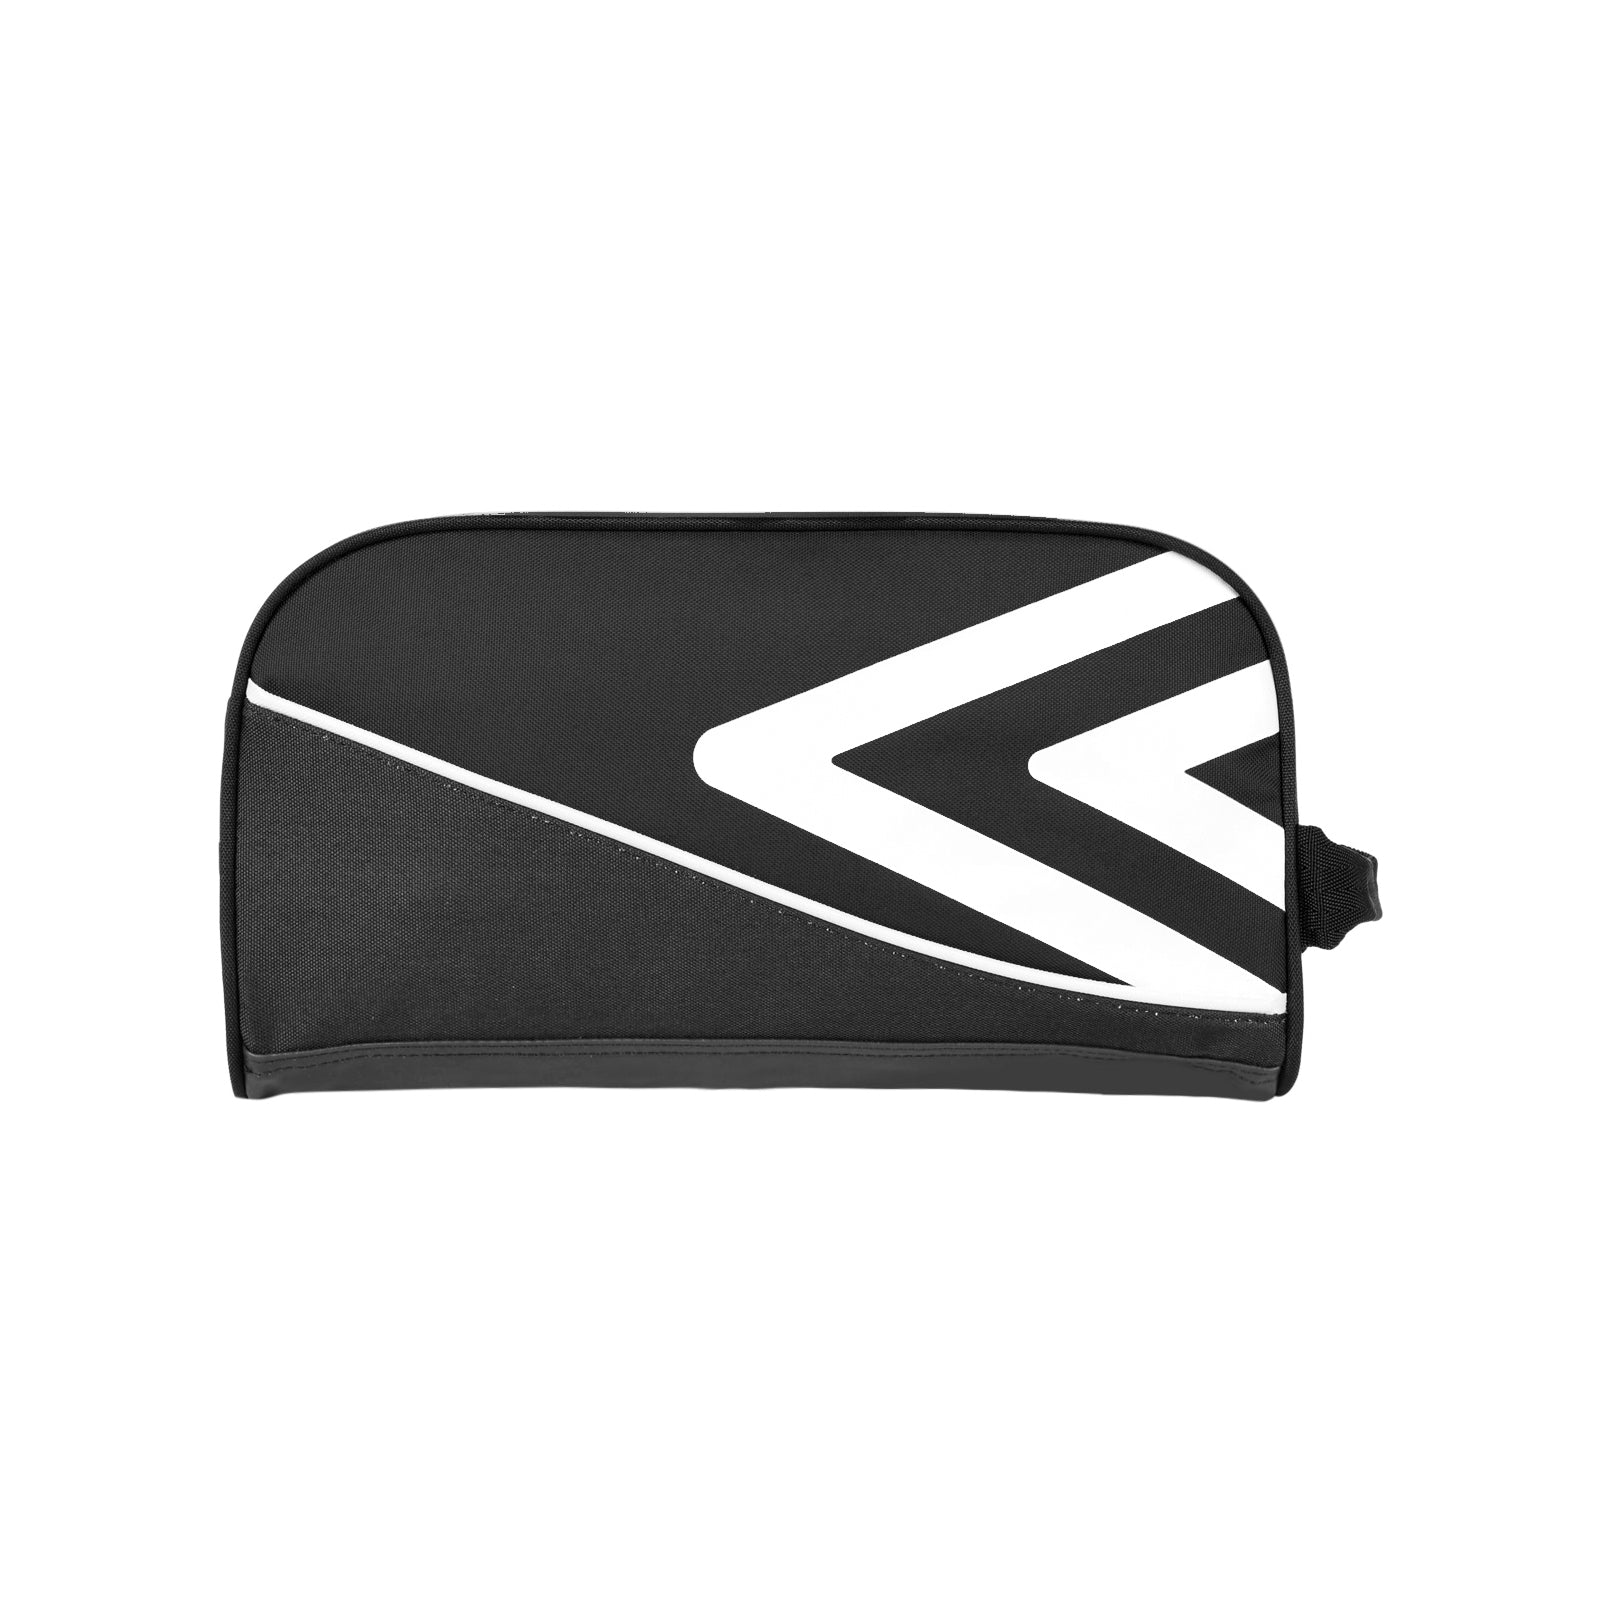 Umbro Pro Training Bootbag in black with large white Double Diamond logo